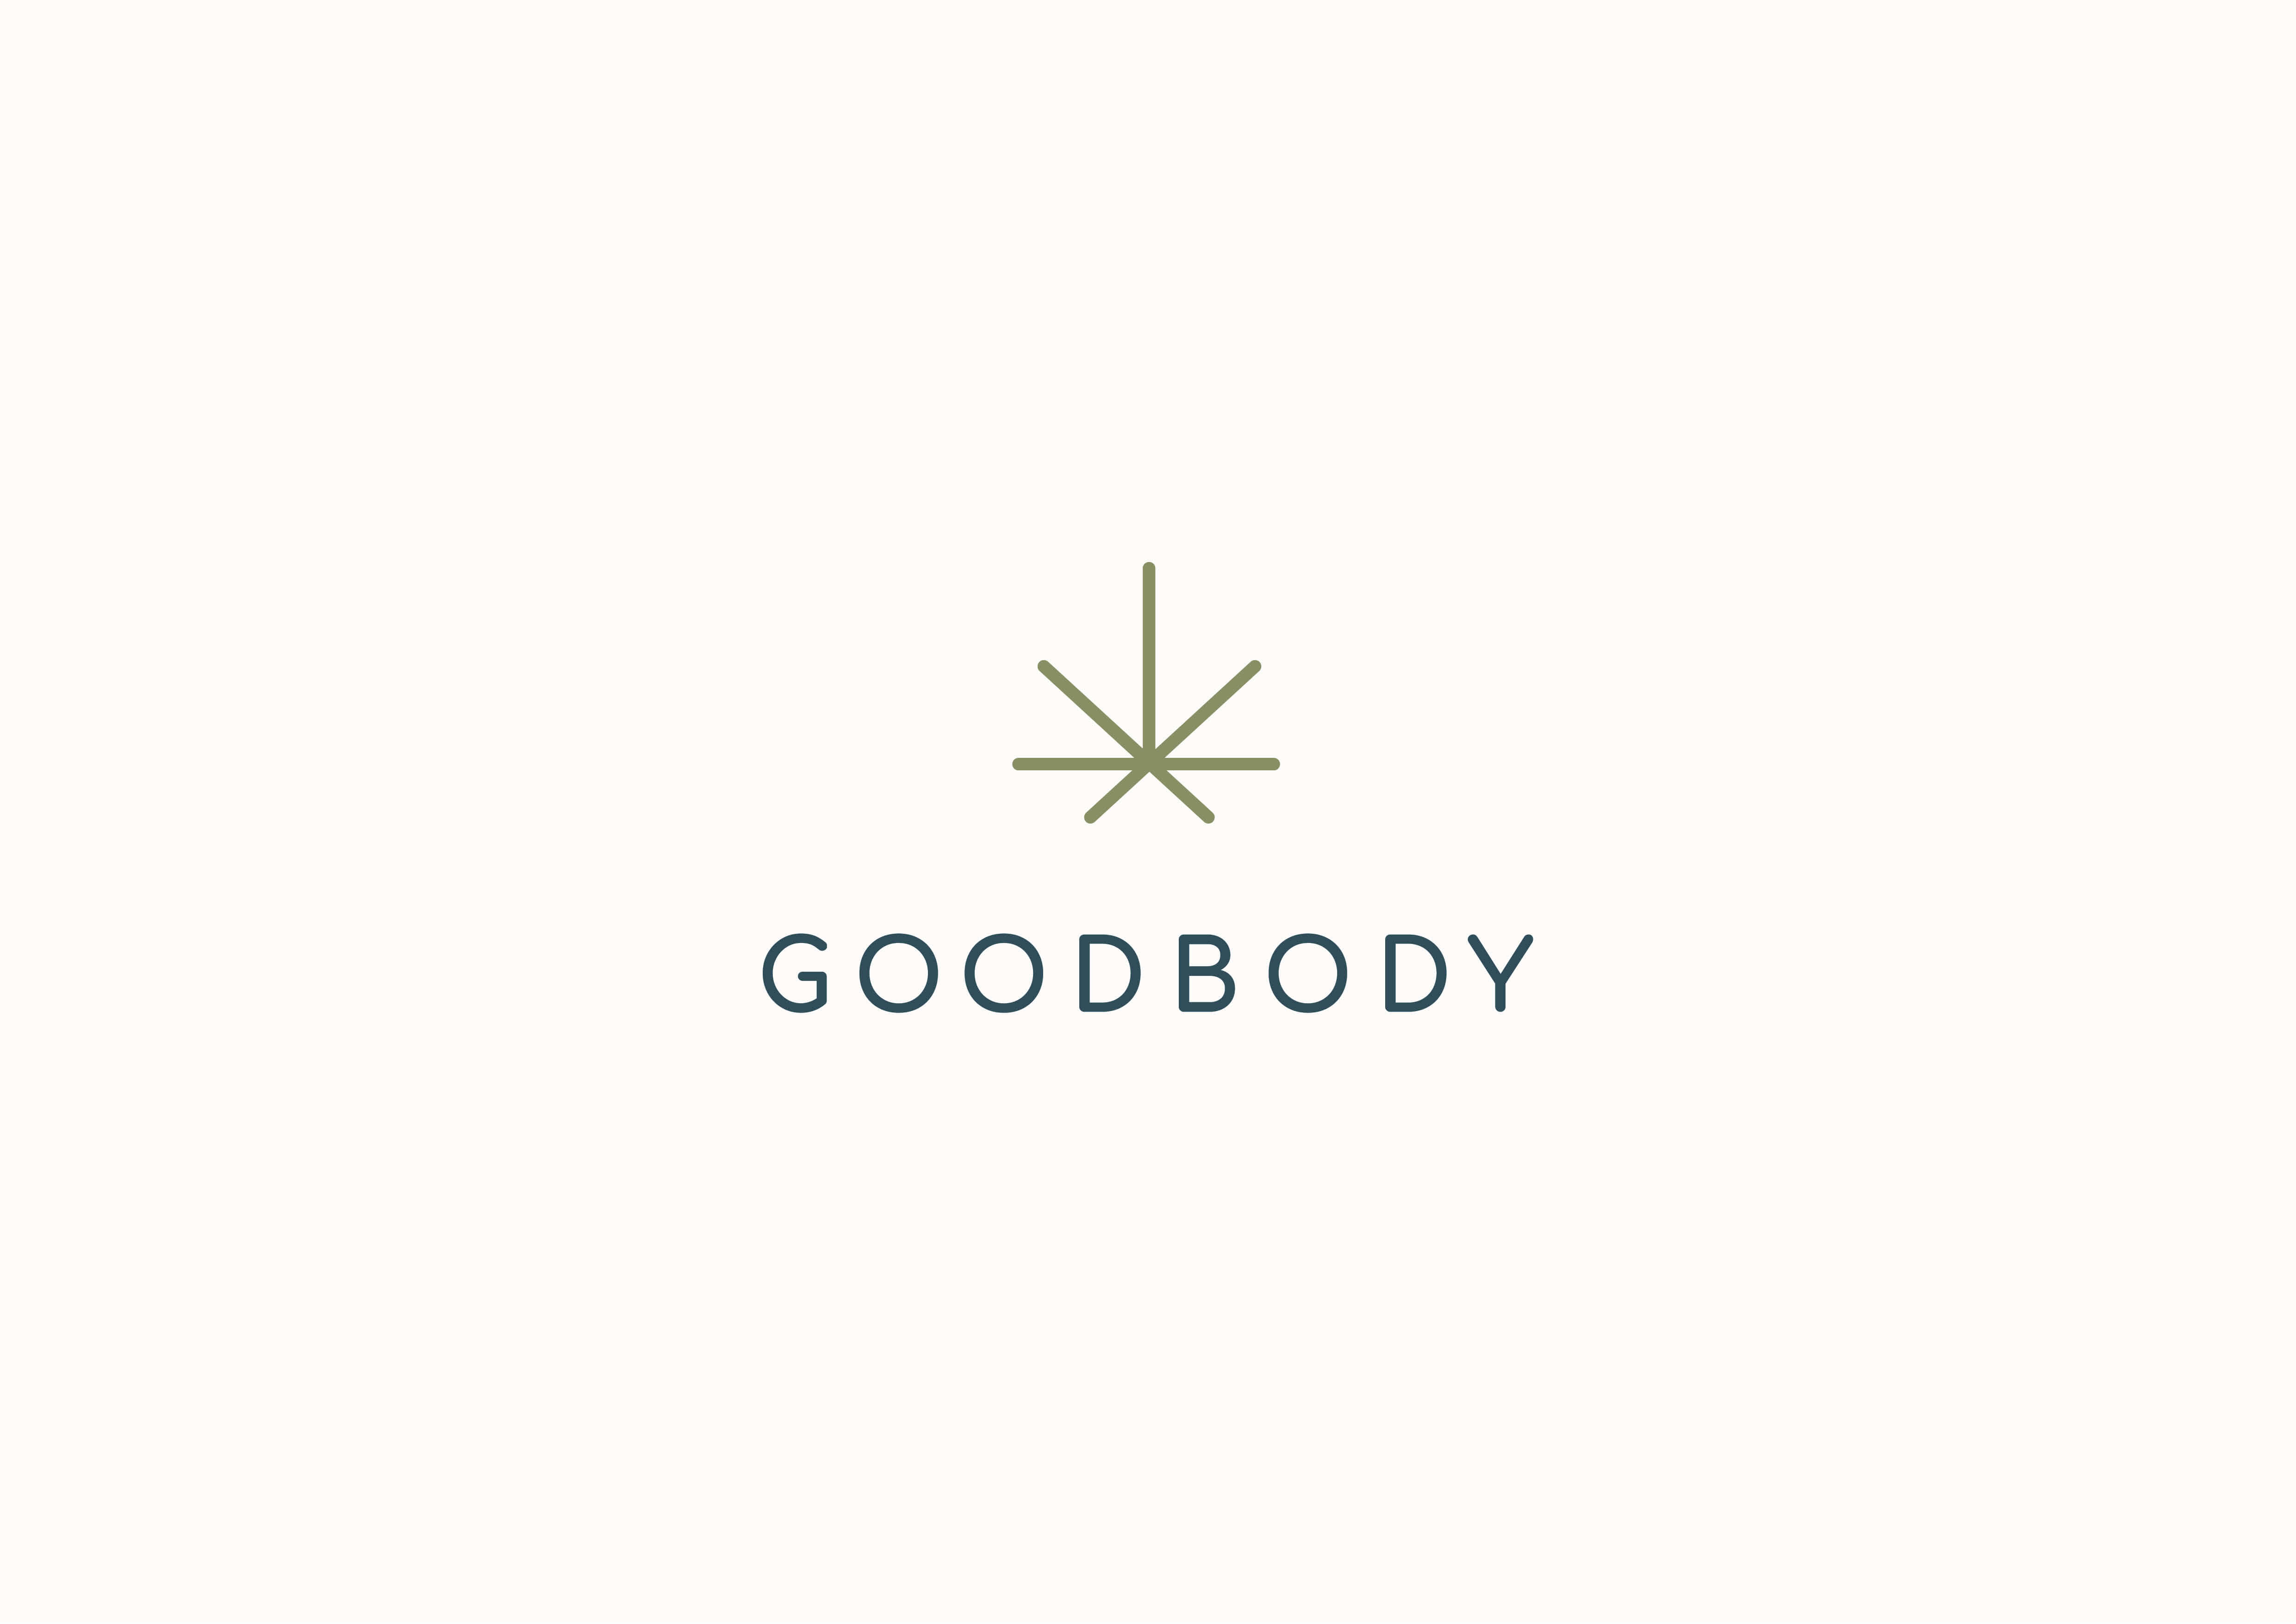 Goodbody Wellness are a revolutionary health and wellbeing startup based in the South West and are one of the UK's first natural, traceable and tested CBD retailers. The expert staff value mother nature and always consider your wellness as a priority. Goodbody aims to offer you a moment of calm in a tranquil and relaxing environment acknowledging that we are in world of hustle and bustle where nothing seems to slow down. I worked with the team from the very beginning developing a sophisticated, modern and calming visual identity and packaging range which reflected their brand values.